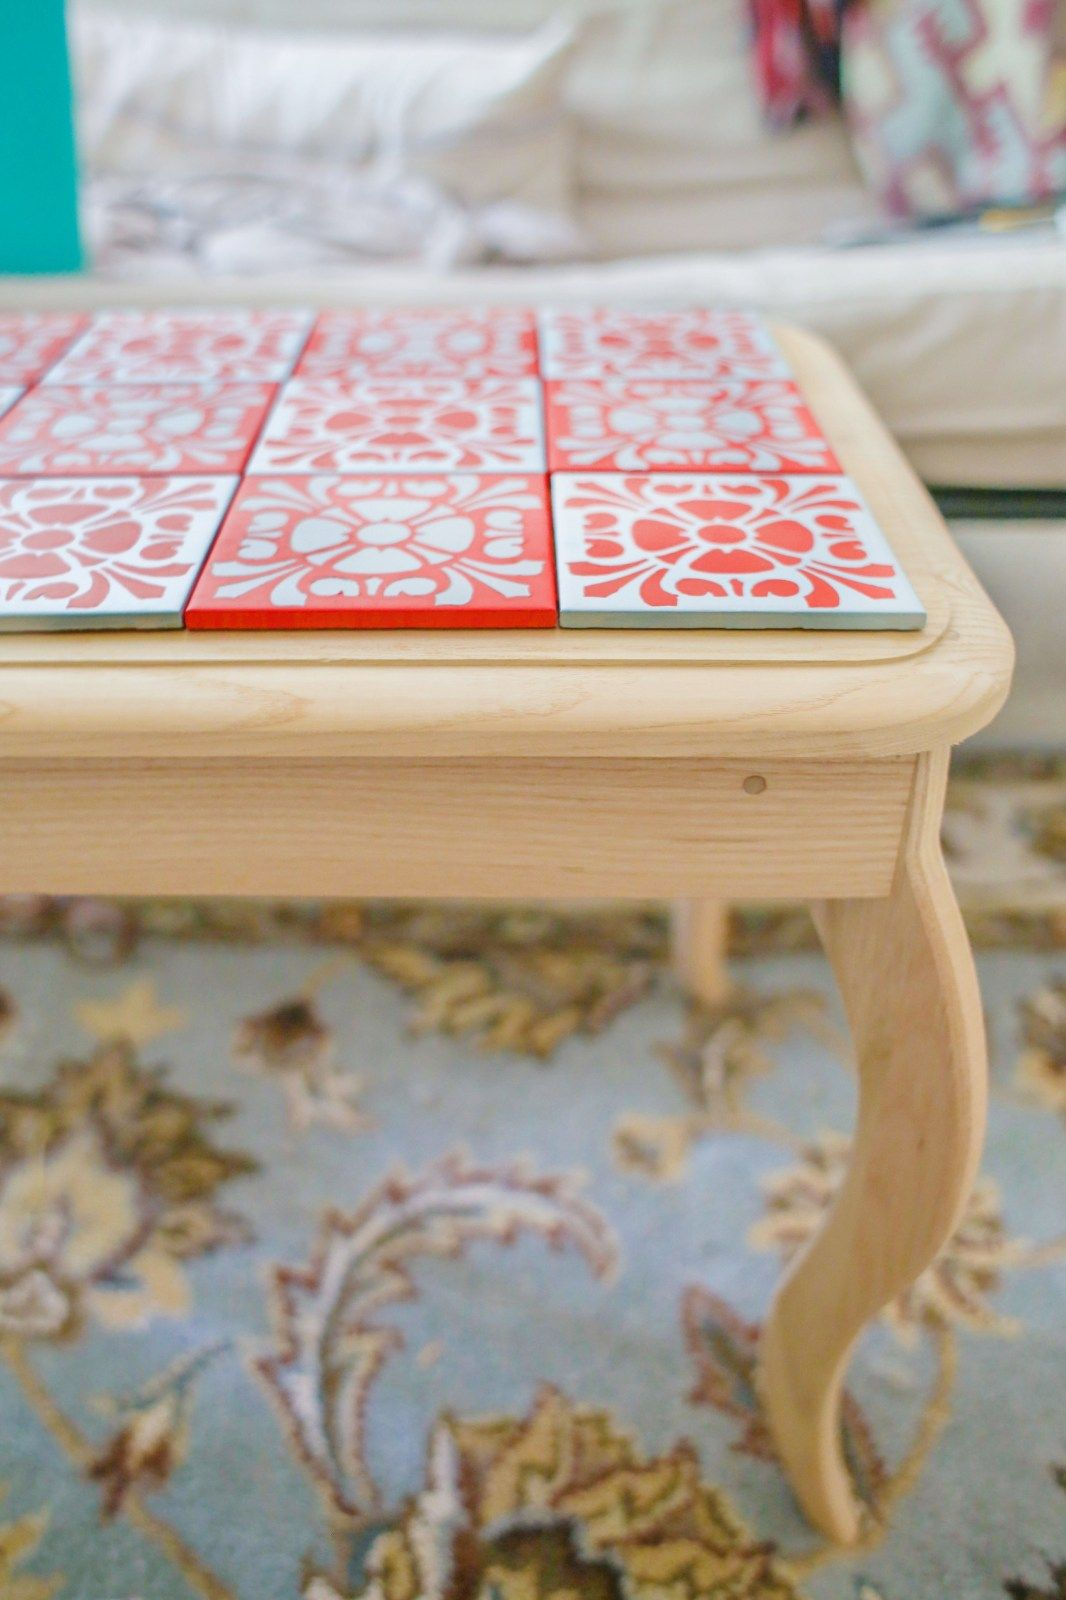 painting tiles - coffee table revamp | house ideas | pinterest